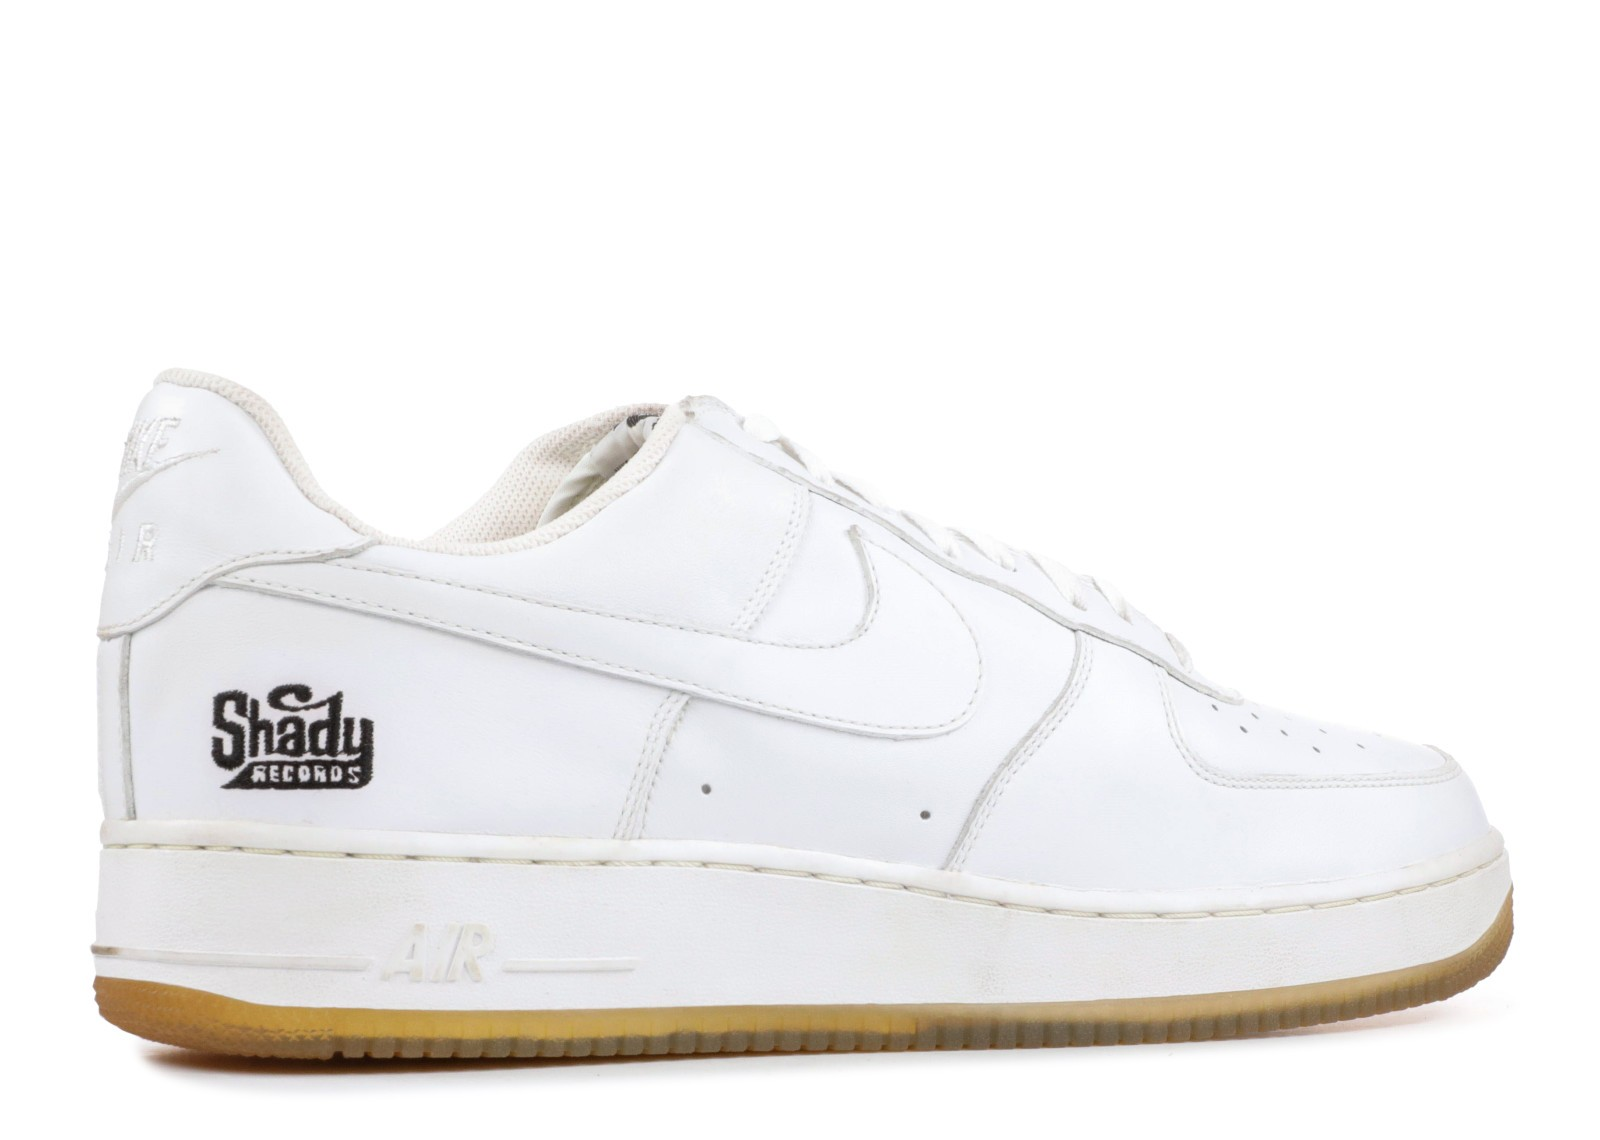 a5f6077e57 Air Force 1 Shady Records Shady White Records 306033-112 - Febbuy